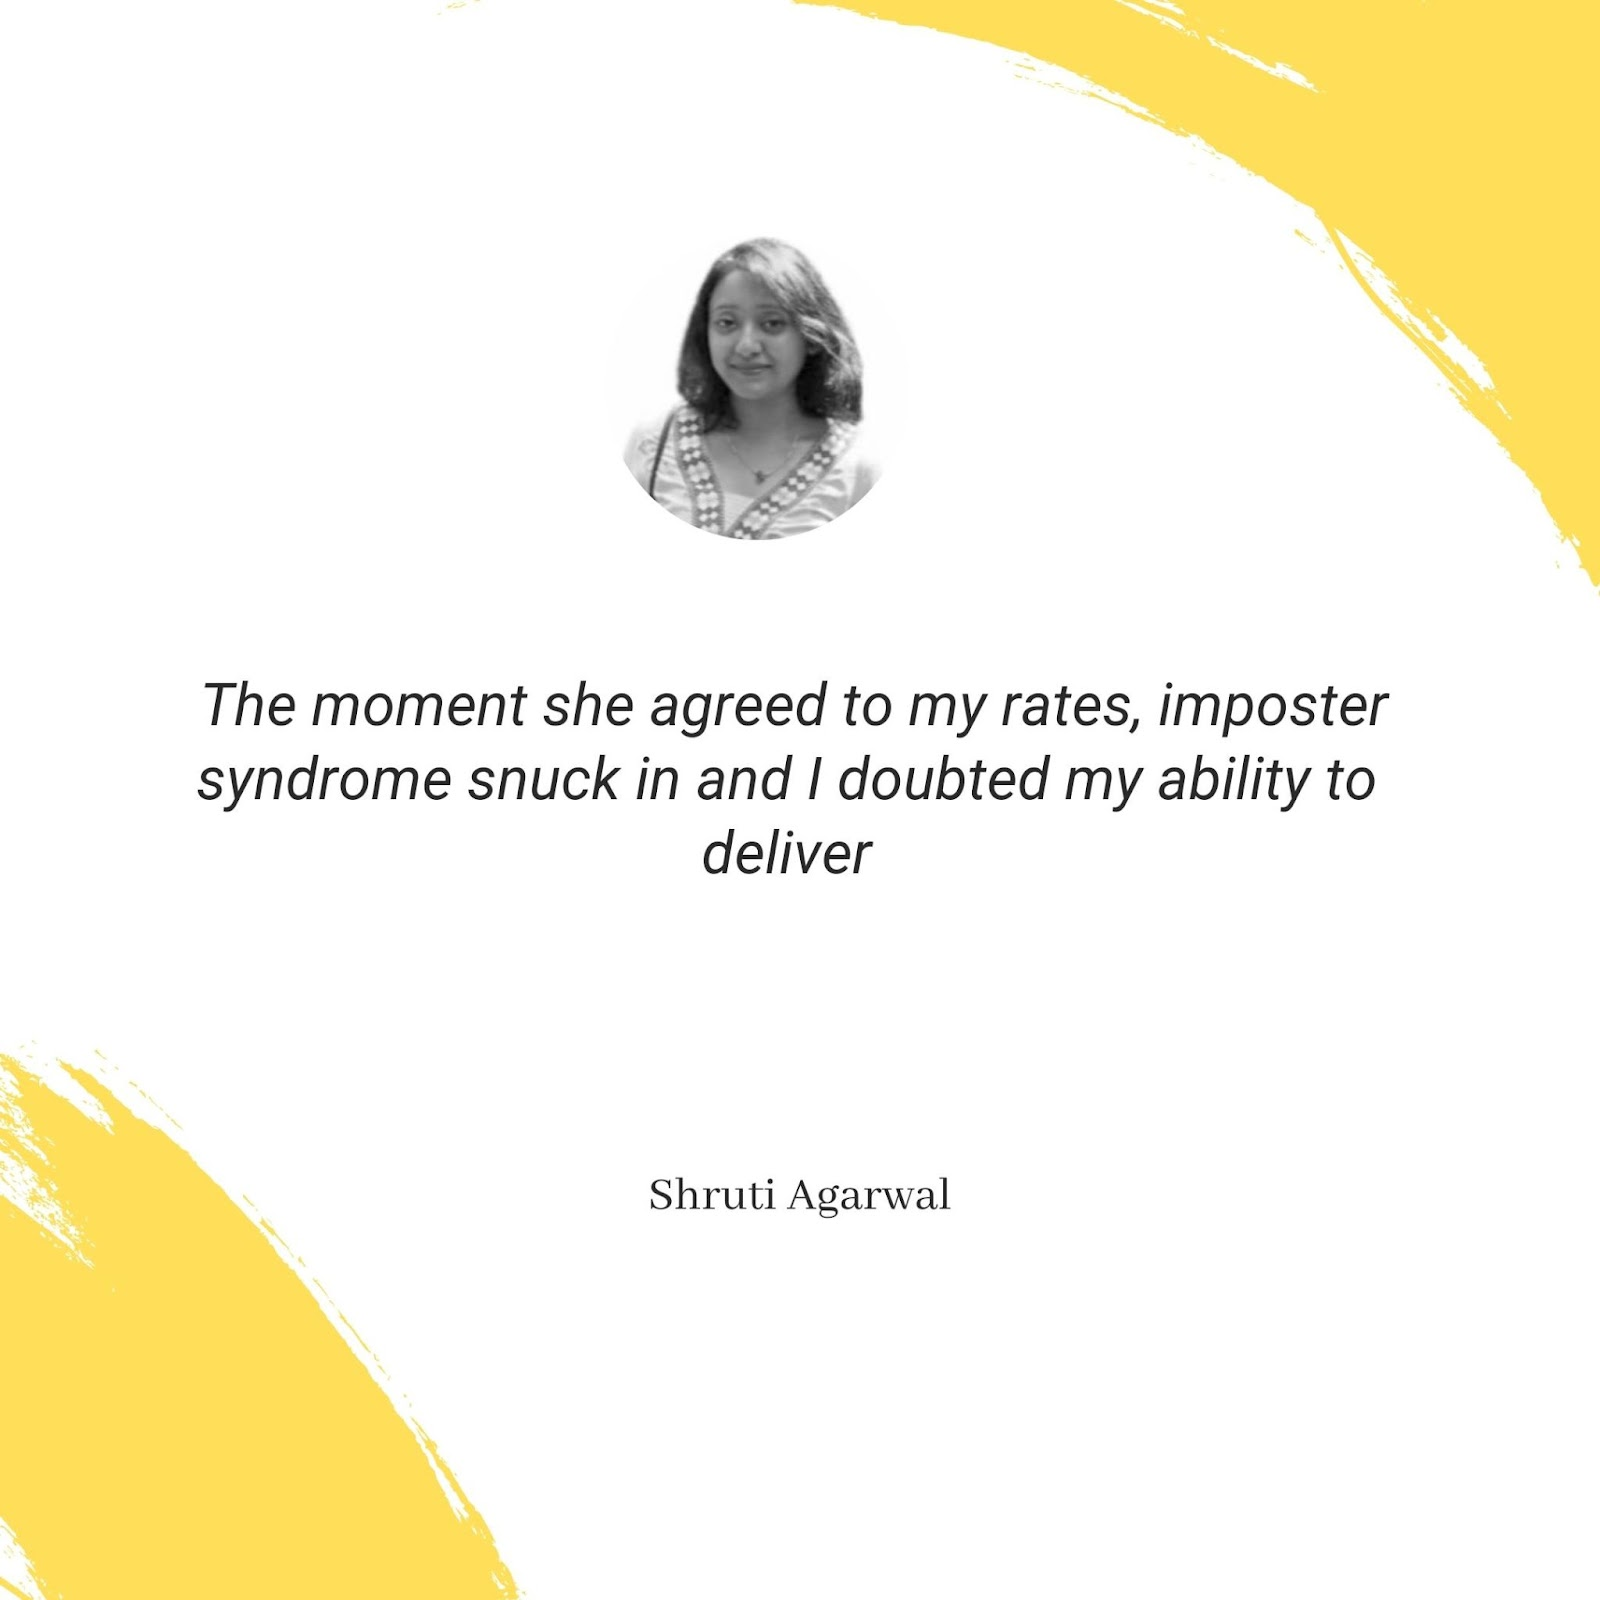 Shruti doubted her ability to deliver because of imposter syndrome